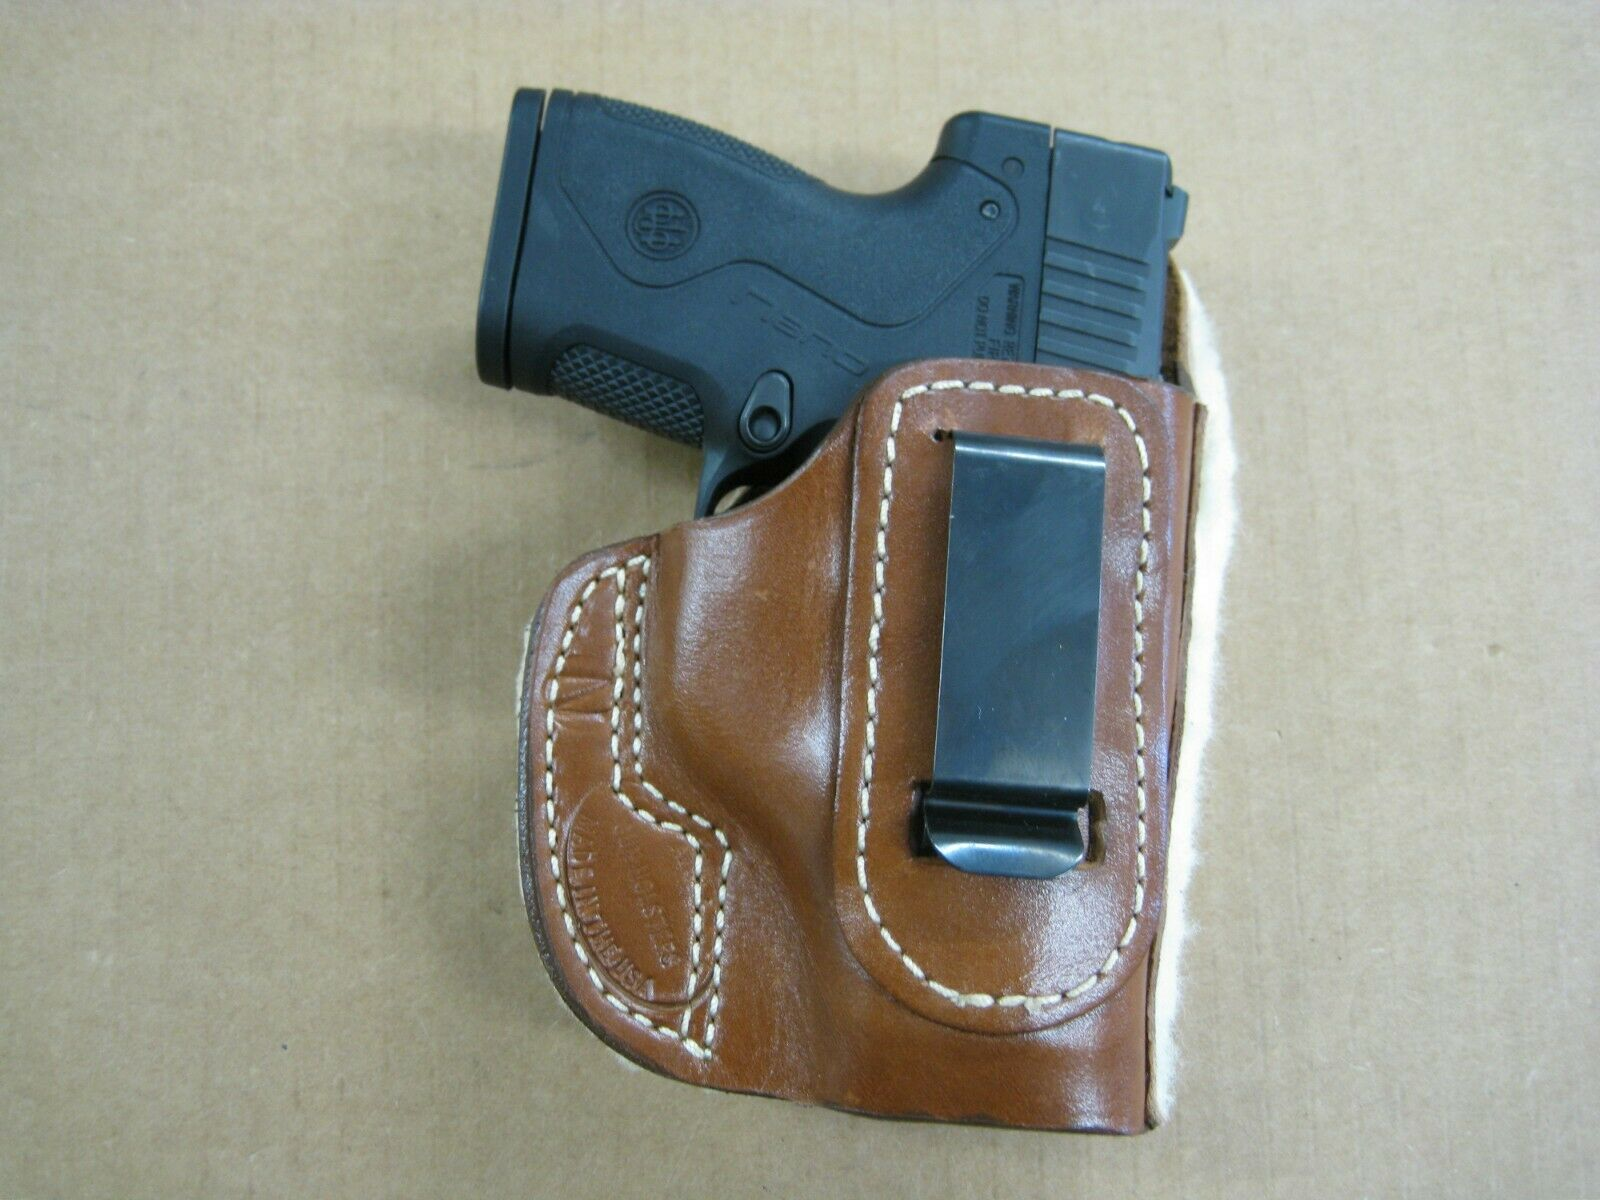 Concealment Leather Soft sheep Leather IWB OR OWB Formed Tactical Gun Holster